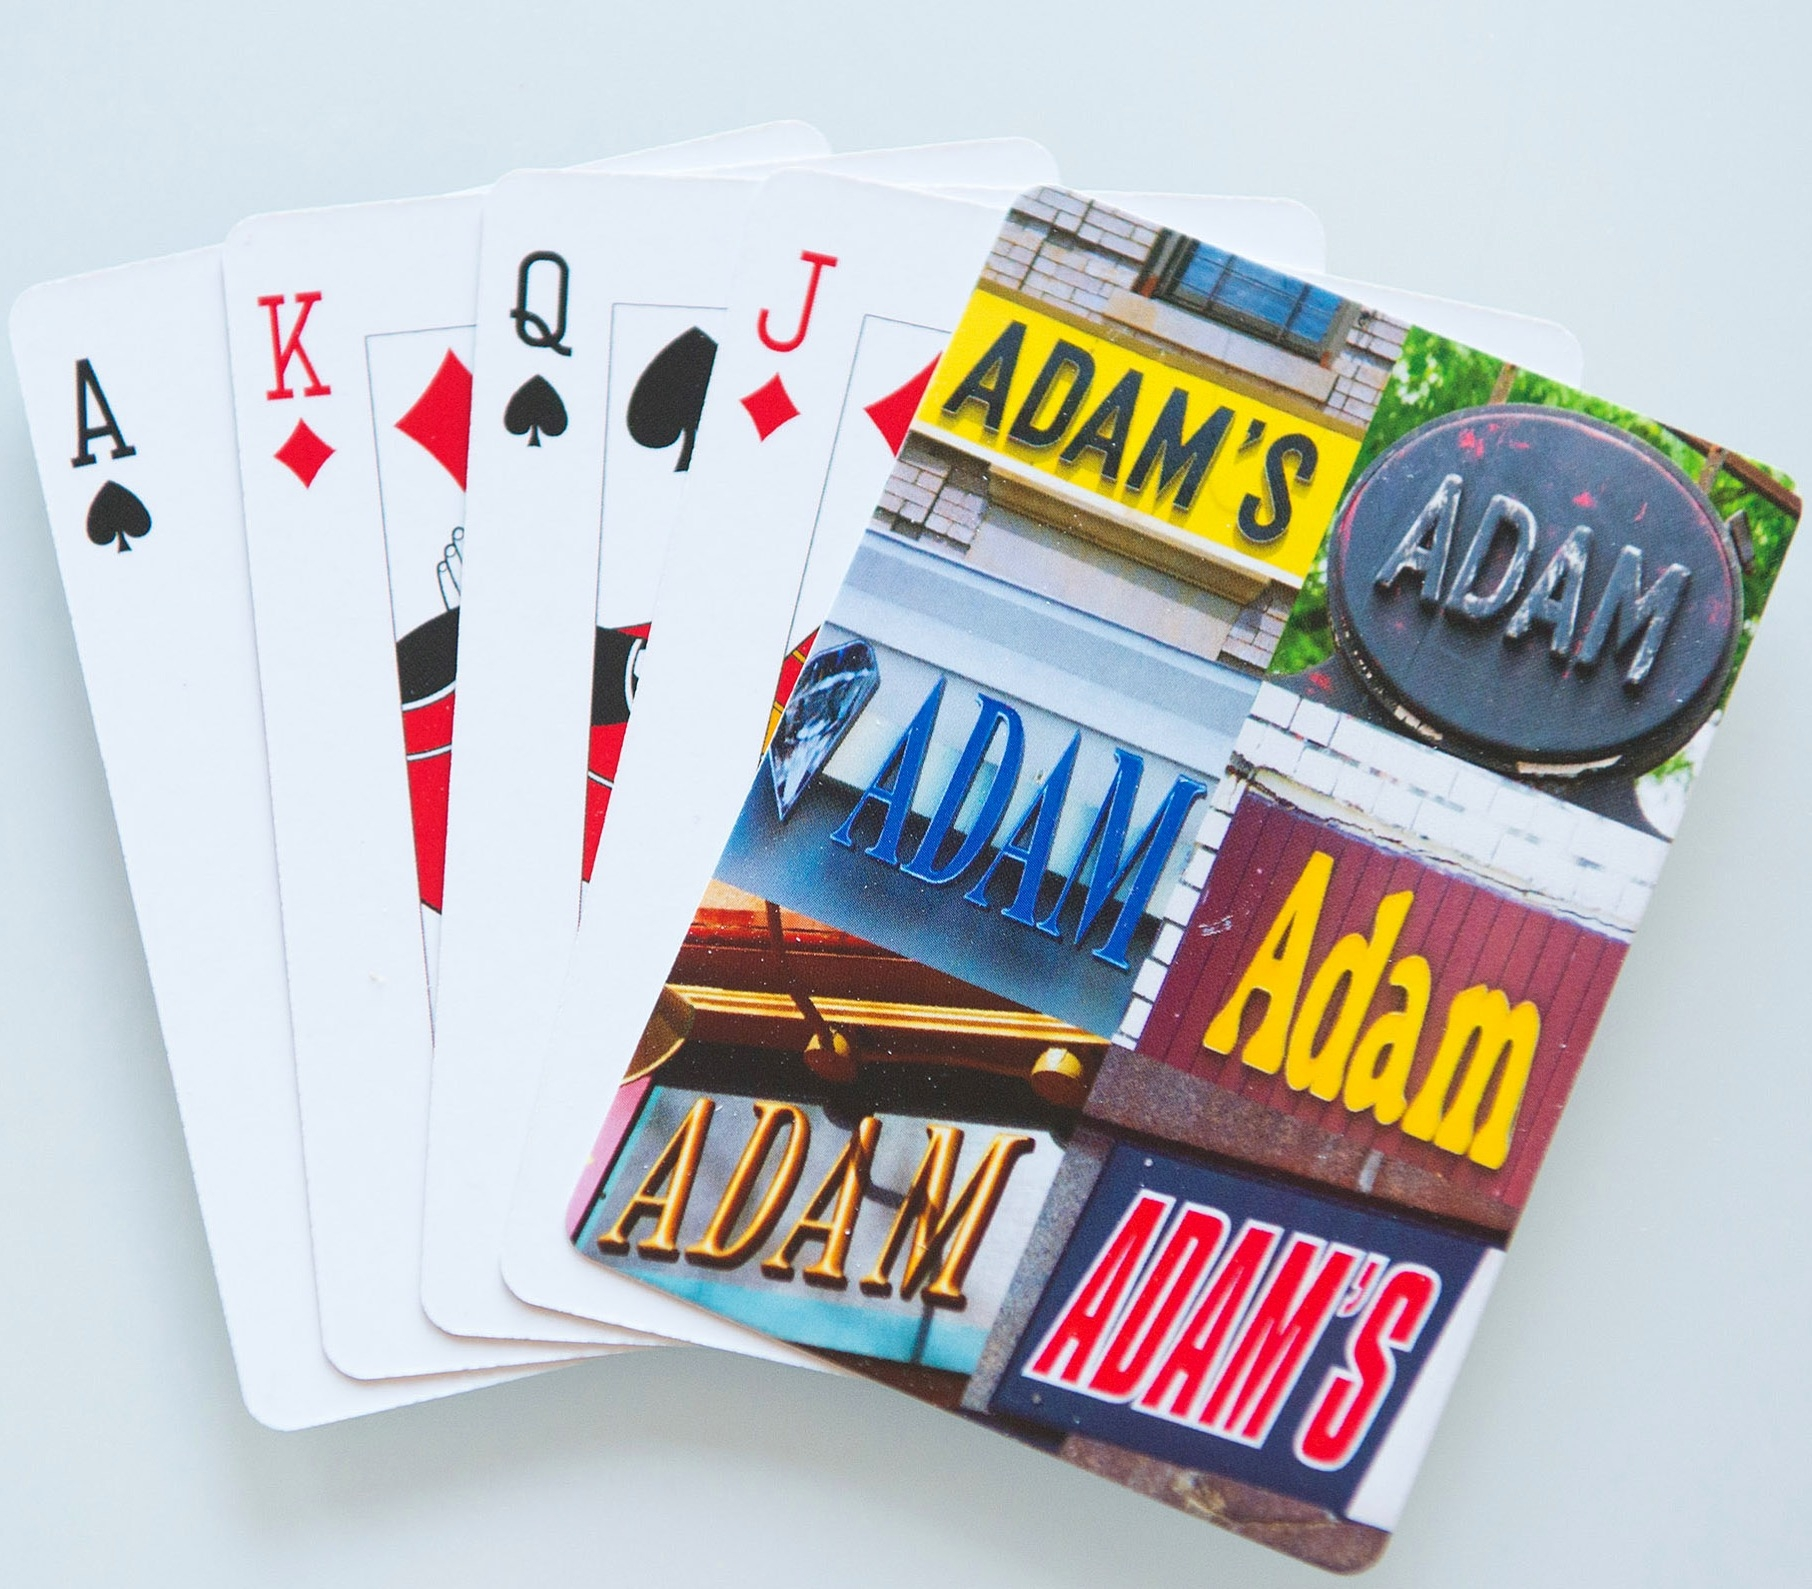 https://www.etsy.com/listing/509767826/custom-playing-cards-featuring-the-name